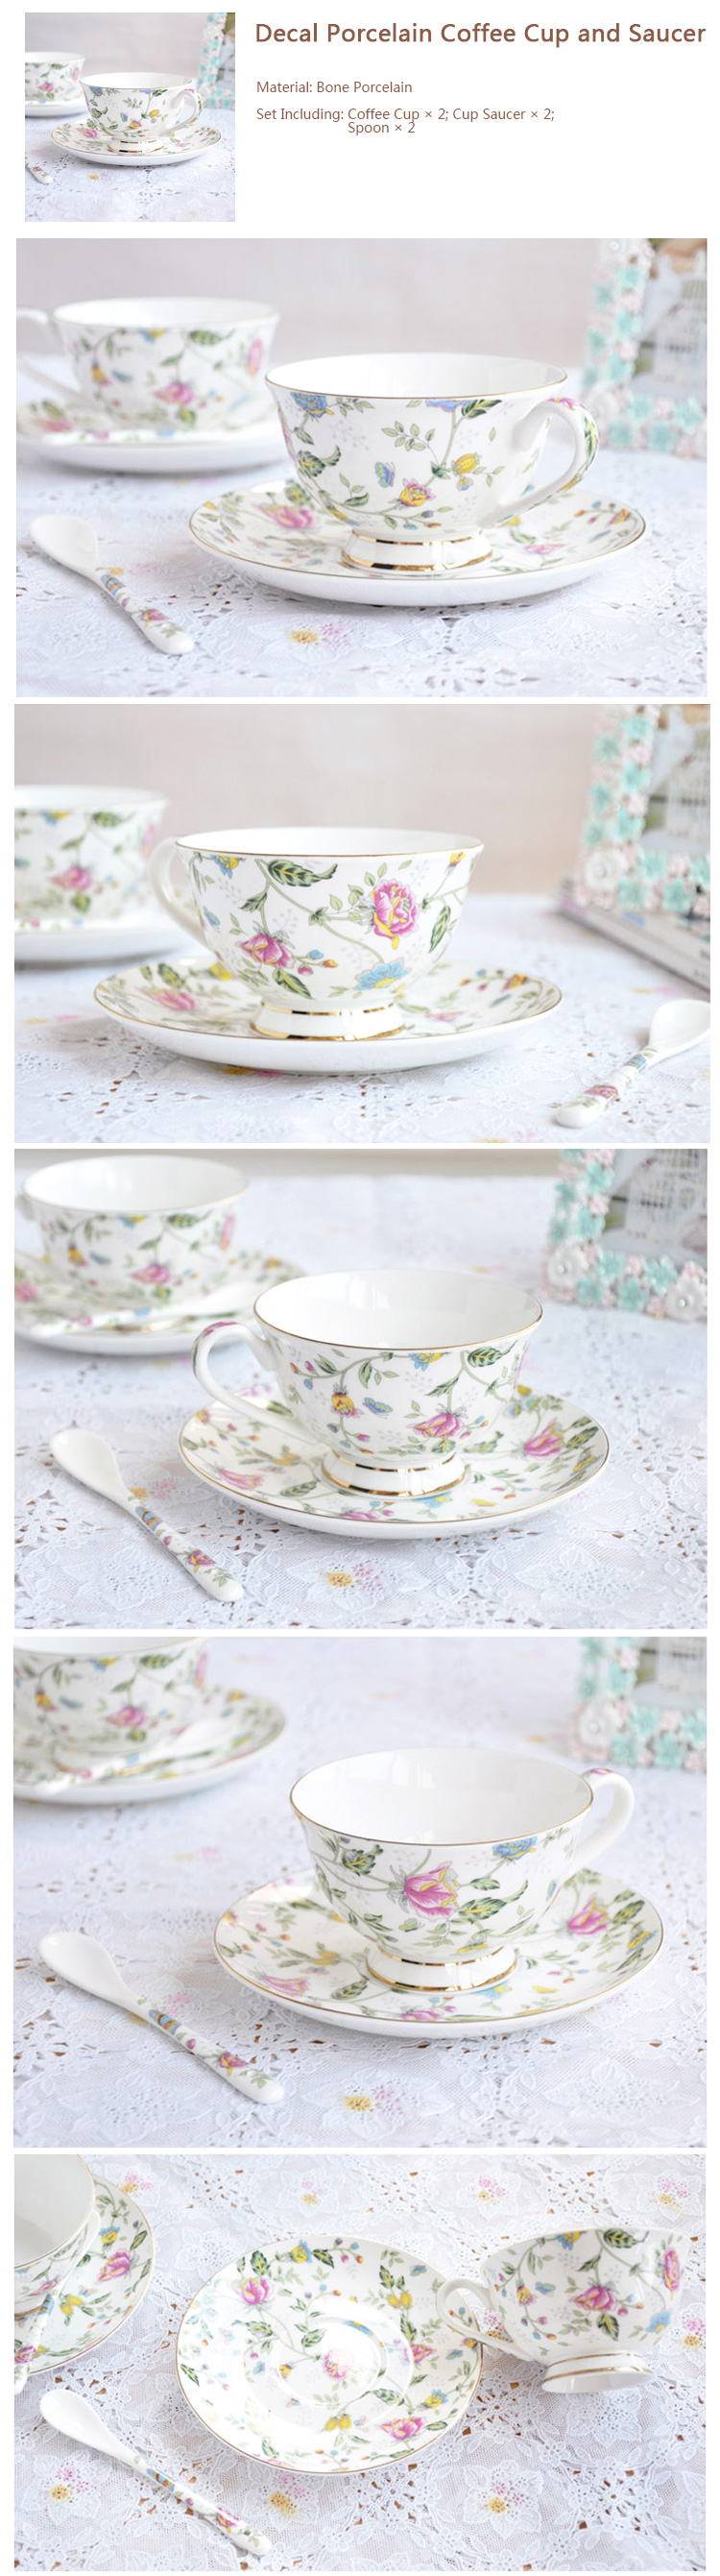 Flower Decal Porcelain Coffee Cup and Saucer Set